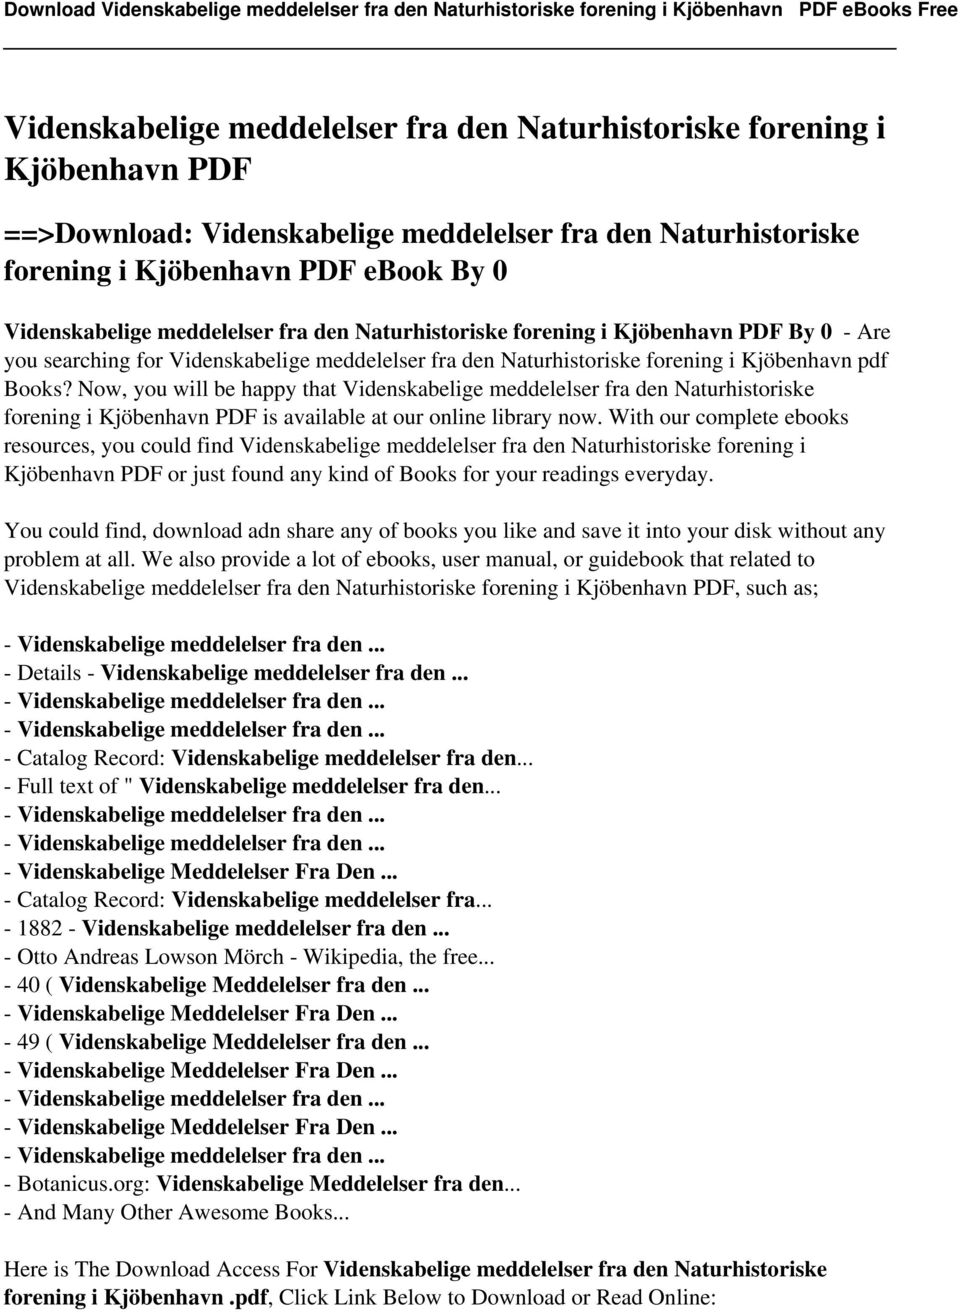 Now, you will be happy that Videnskabelige meddelelser fra den Naturhistoriske forening i Kjöbenhavn PDF is available at our online library now.